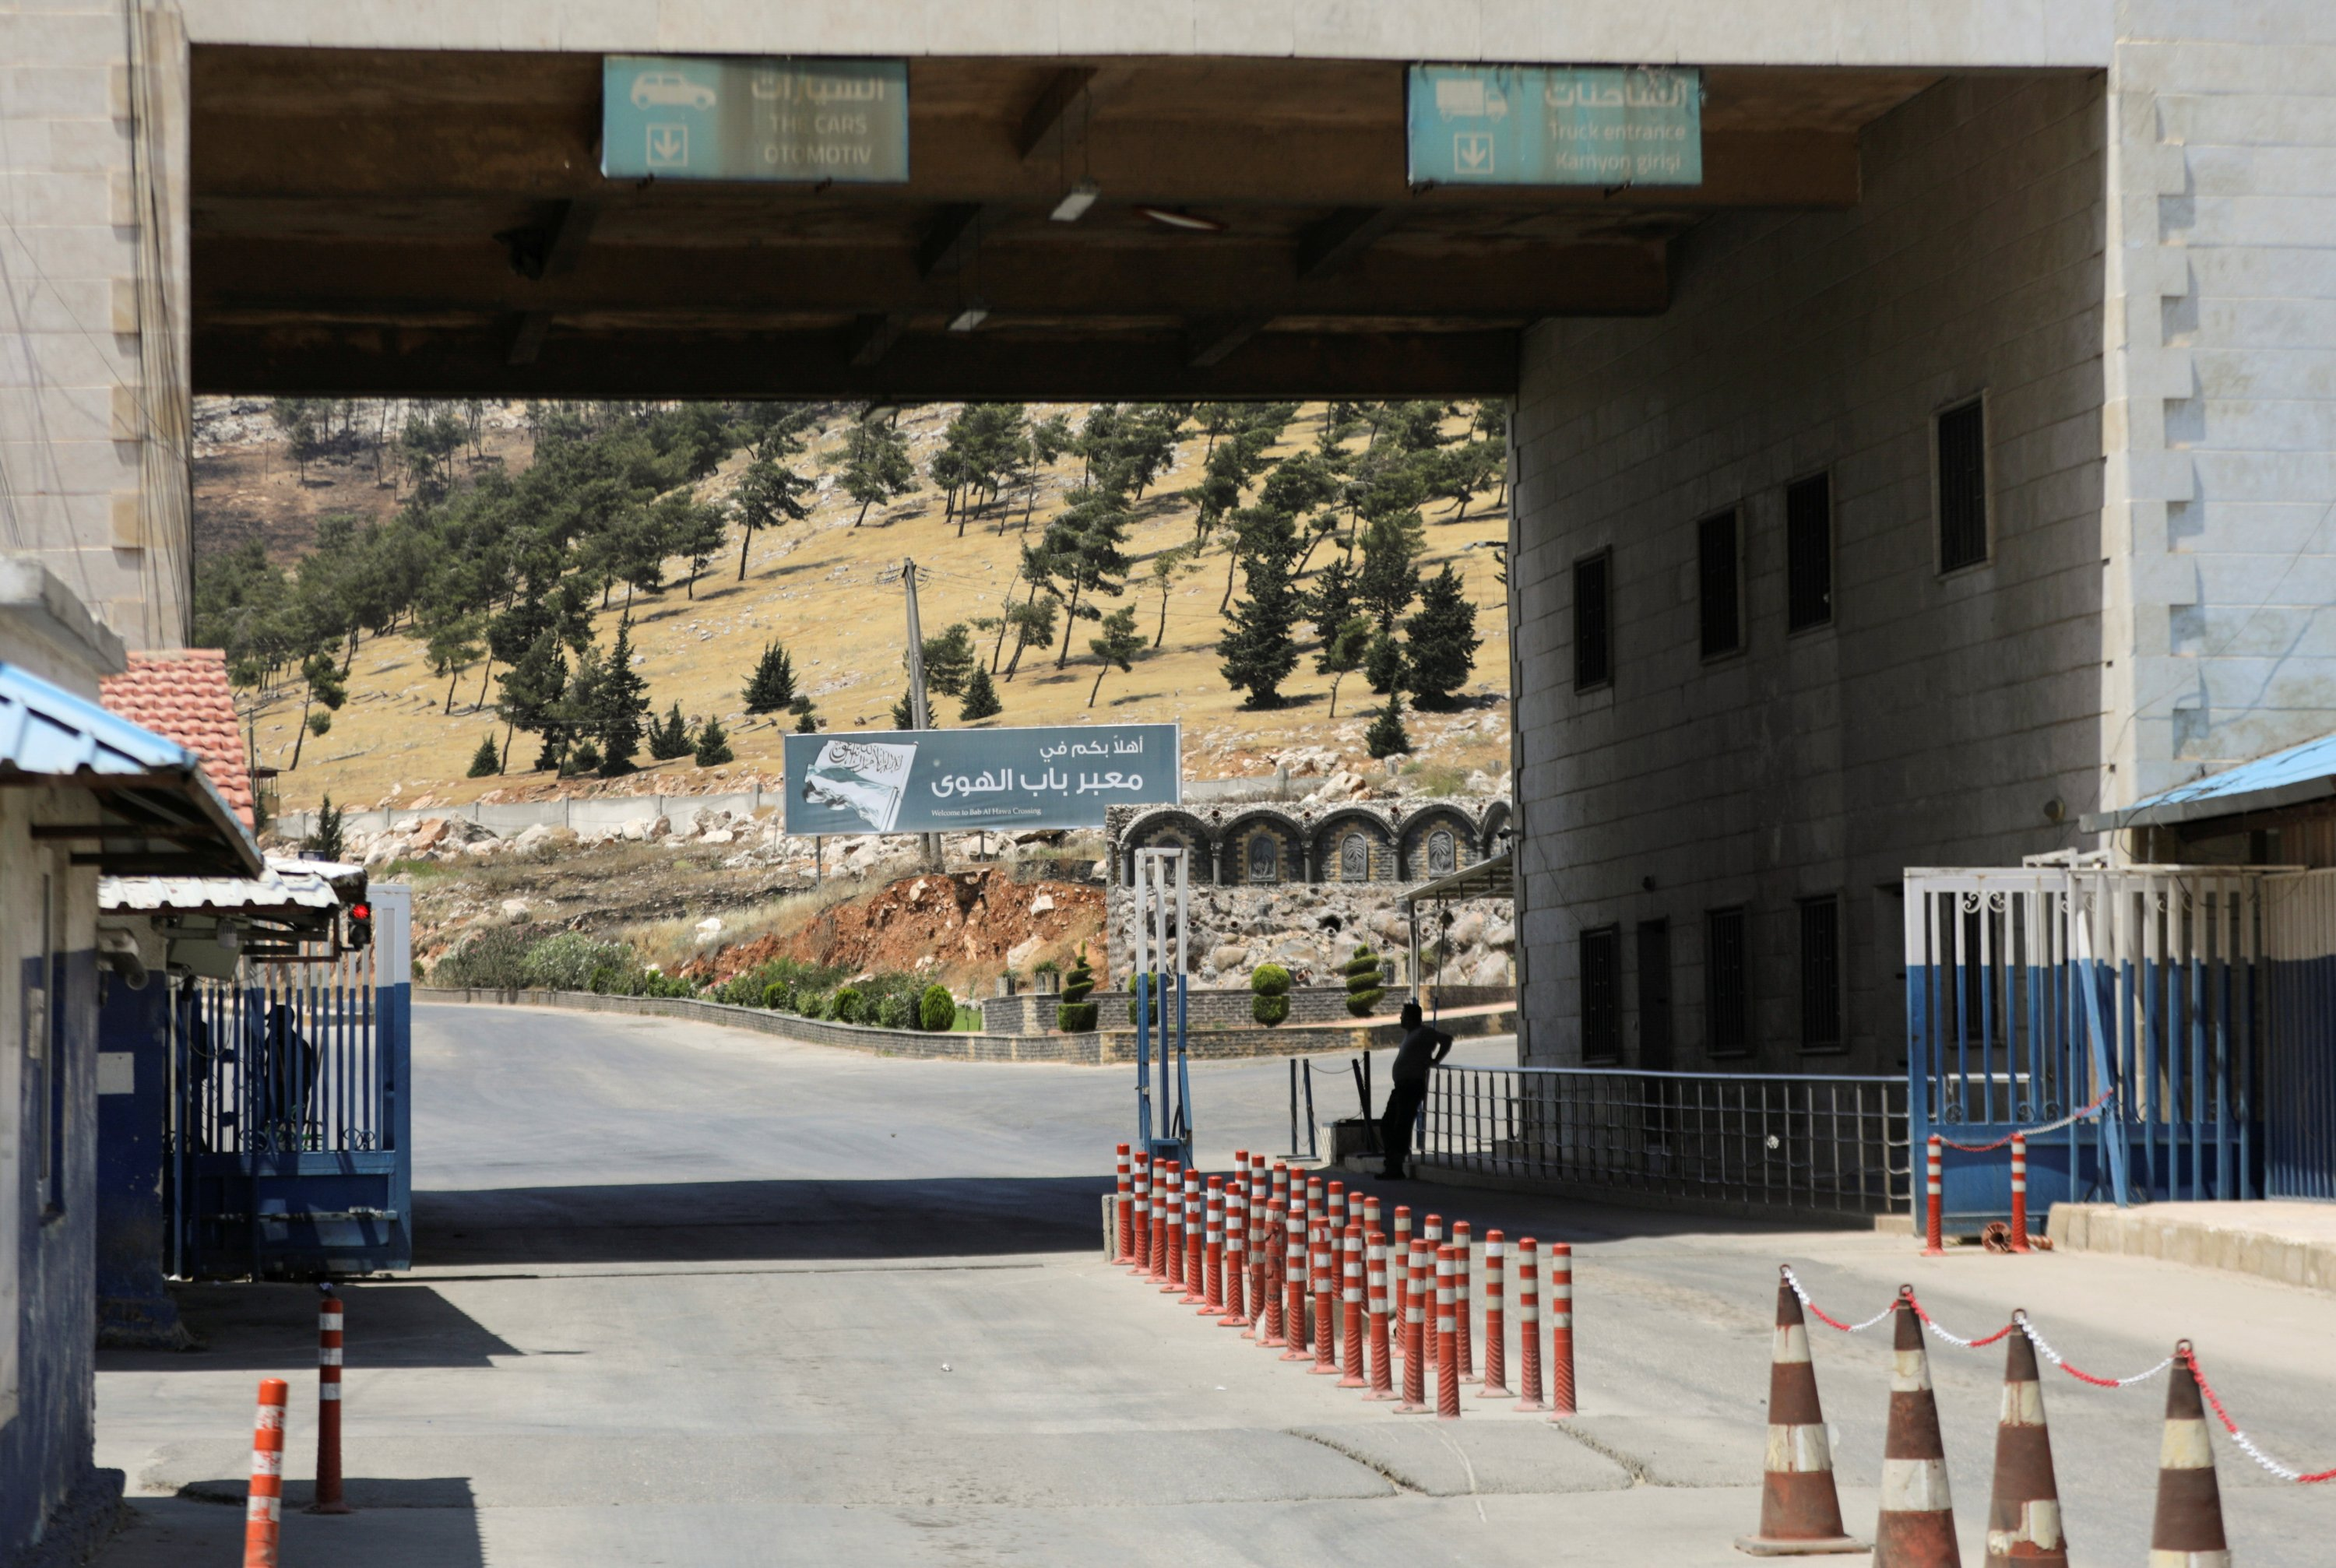 A road sign that reads 'Welcome to Bab al-Hawa crossing' is seen at Bab al-Hawa crossing at the Syrian-Turkish border, in Idlib governorate, northwestern Syria, June 10, 2021. (REUTERS Photo)